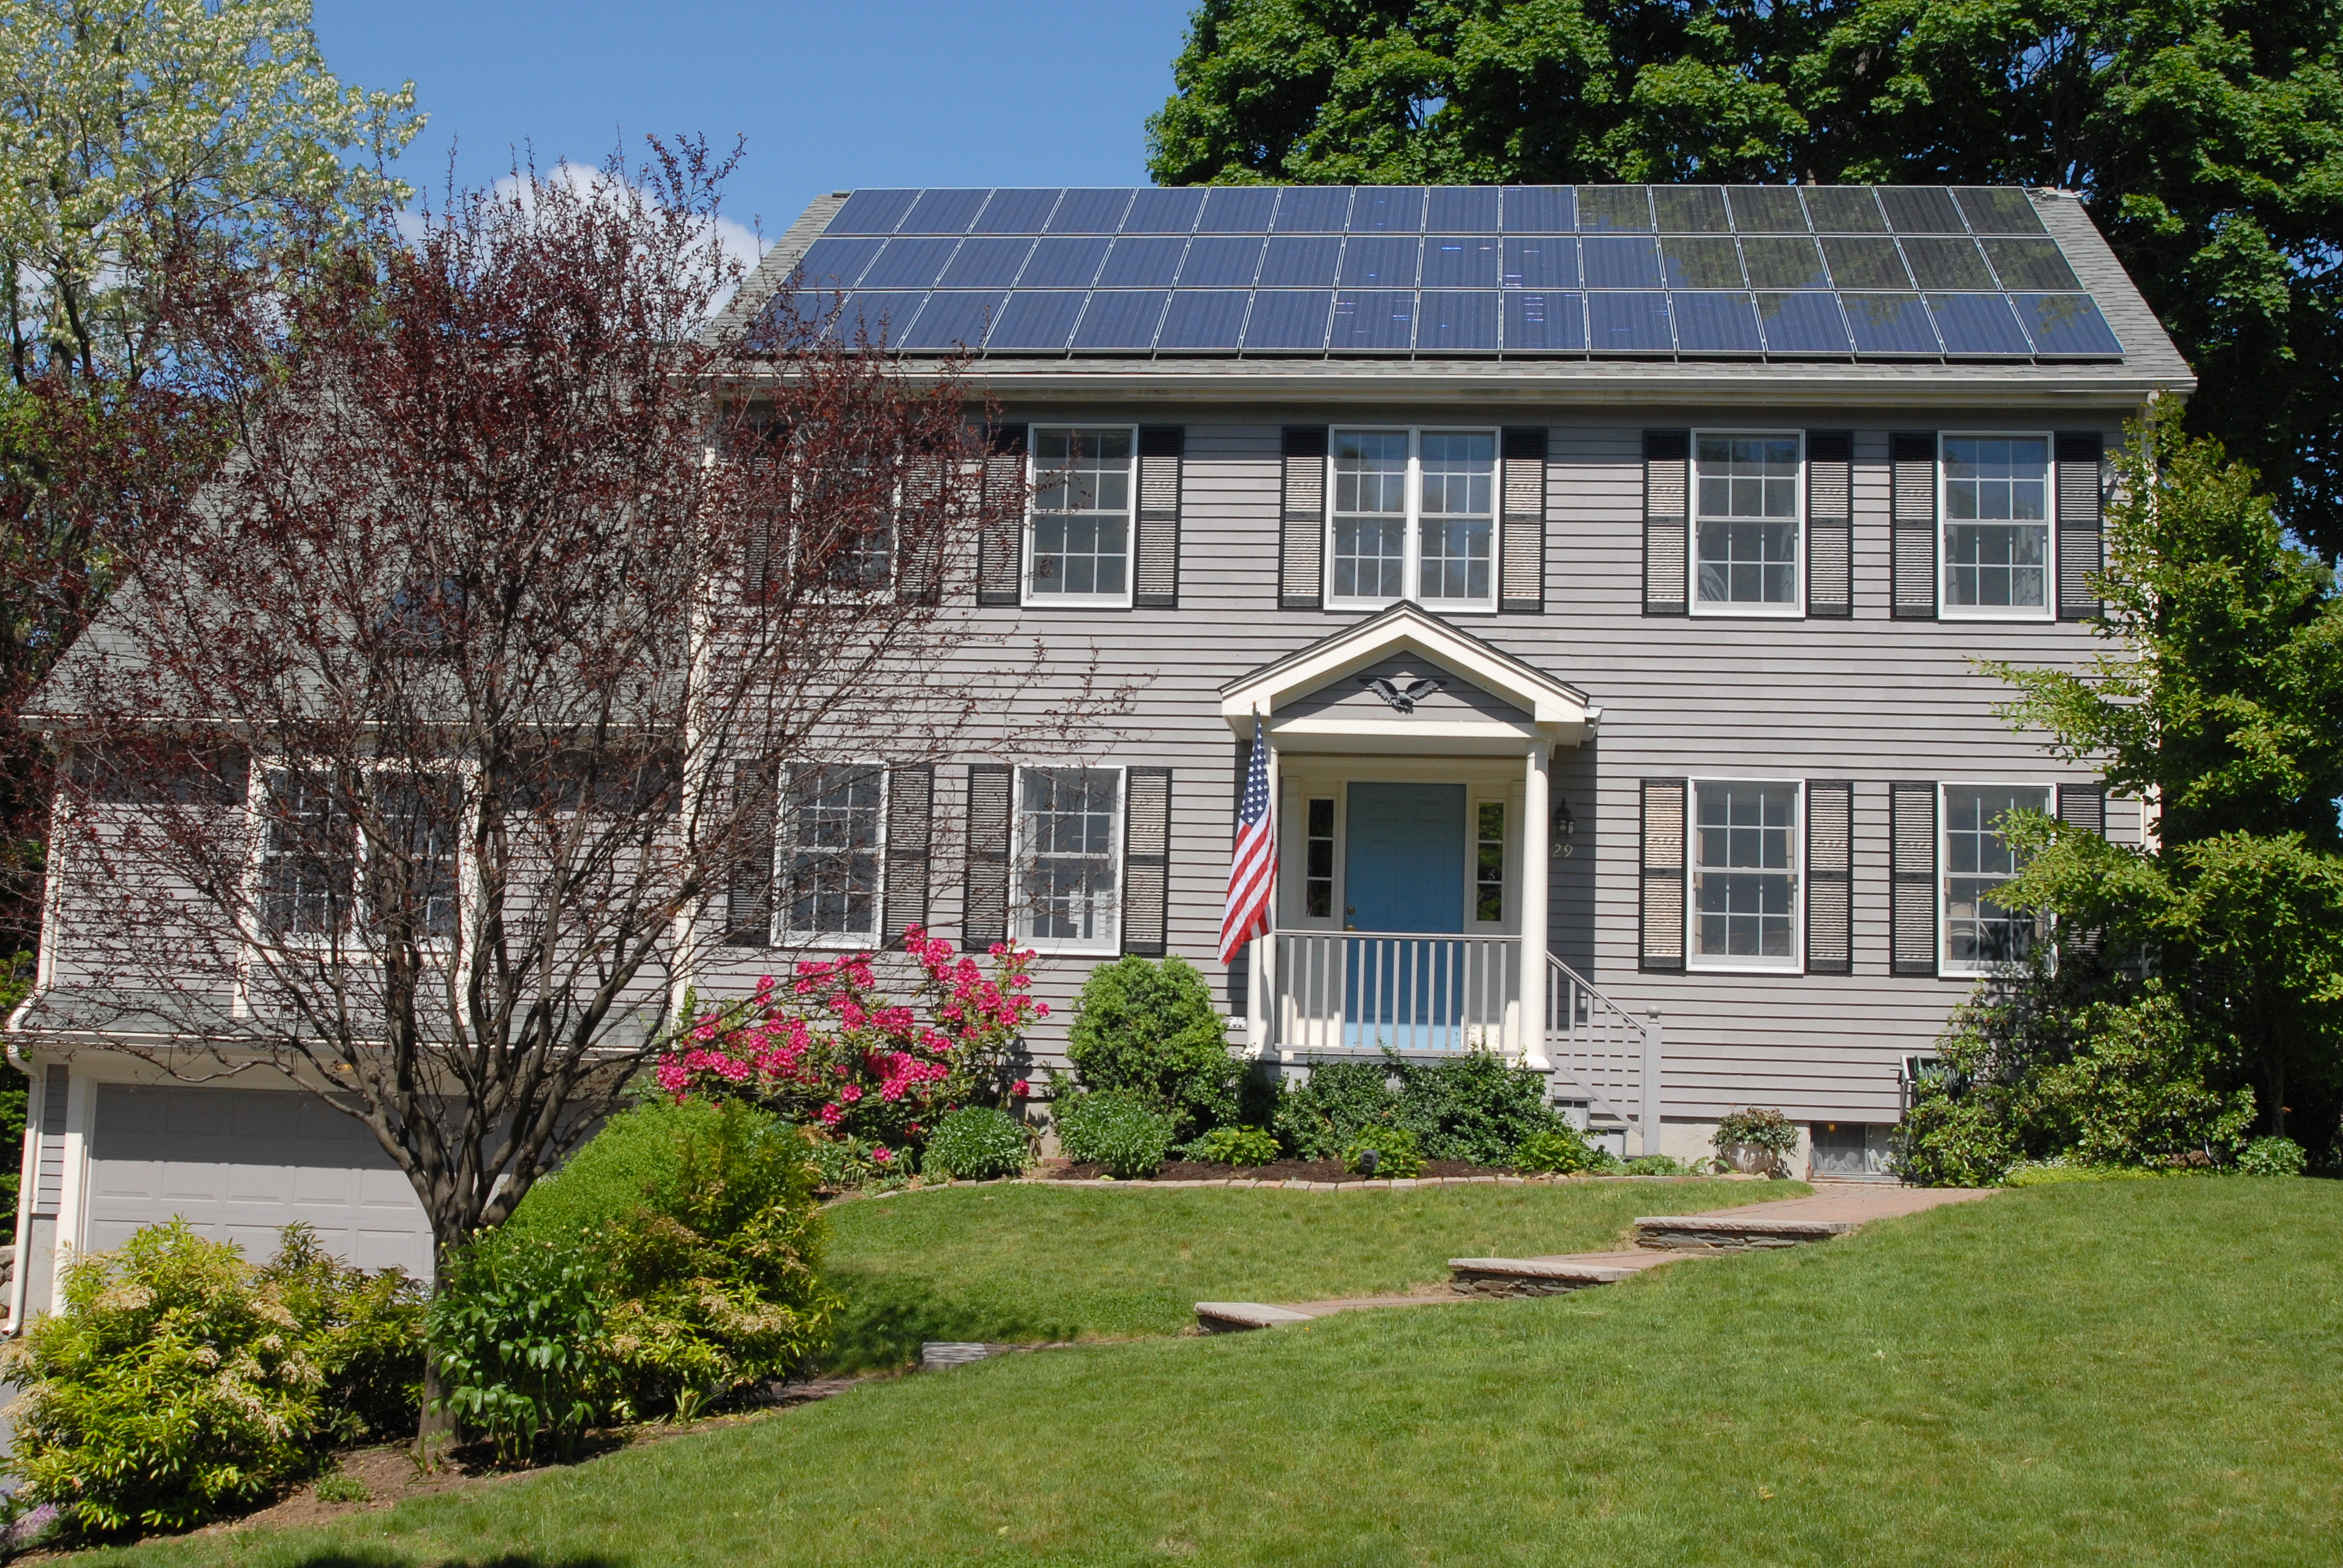 Solar Panels for Your Home - Is it Worth It?